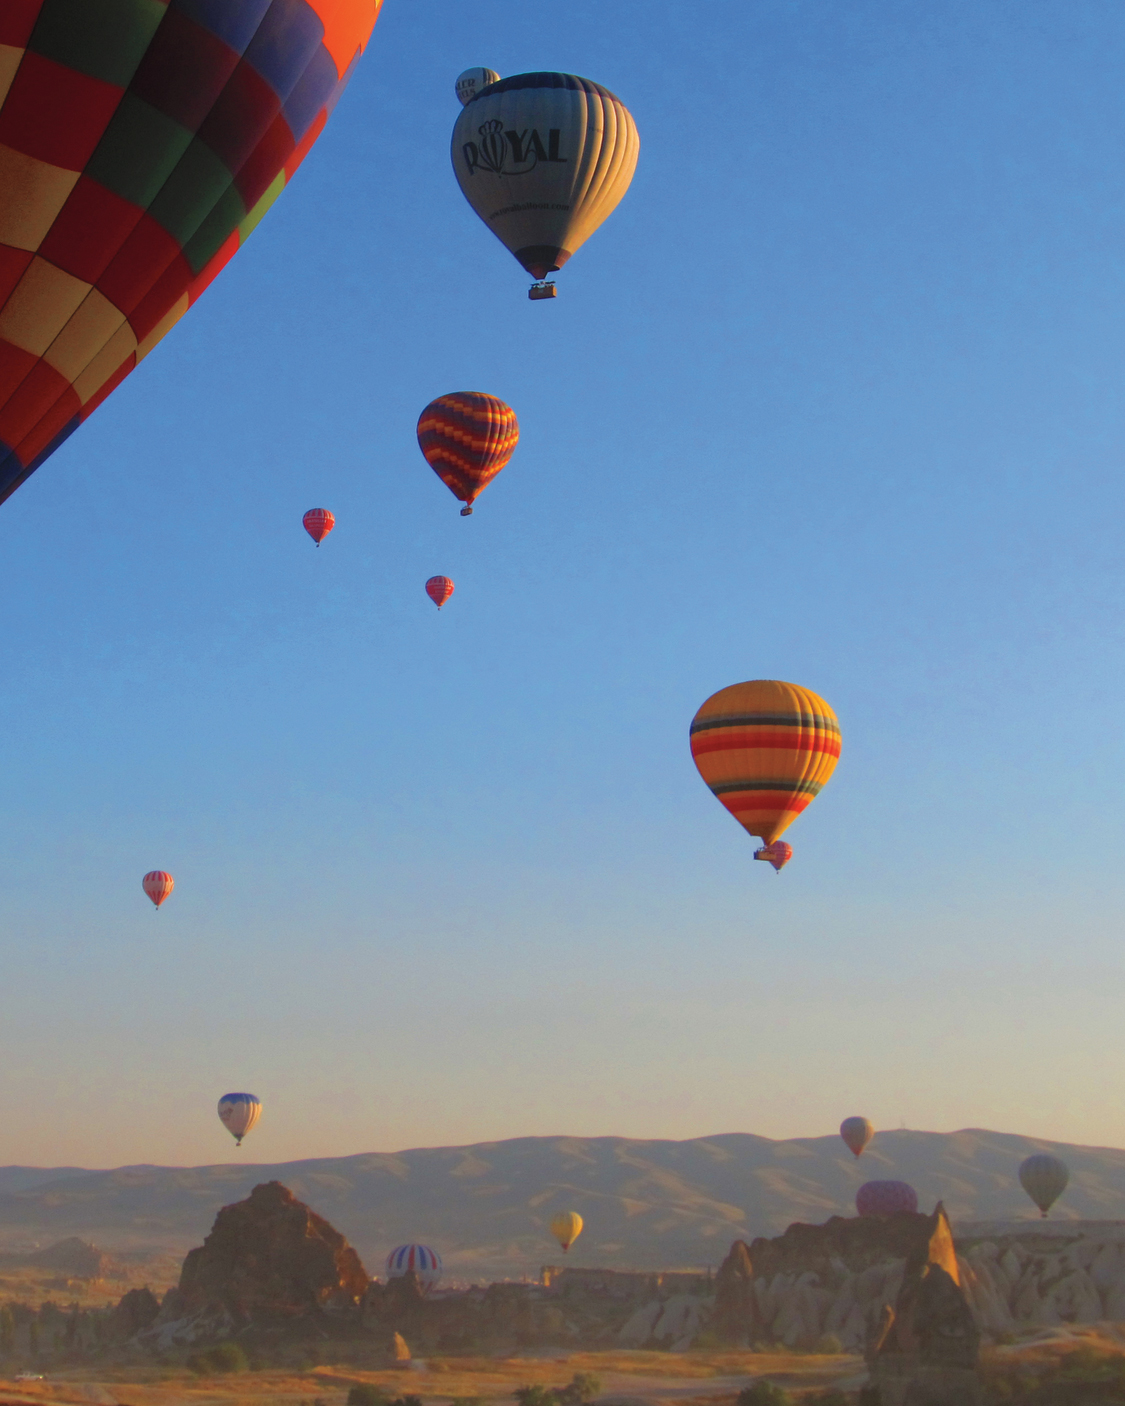 hot-air-balloons-mds108479.jpg